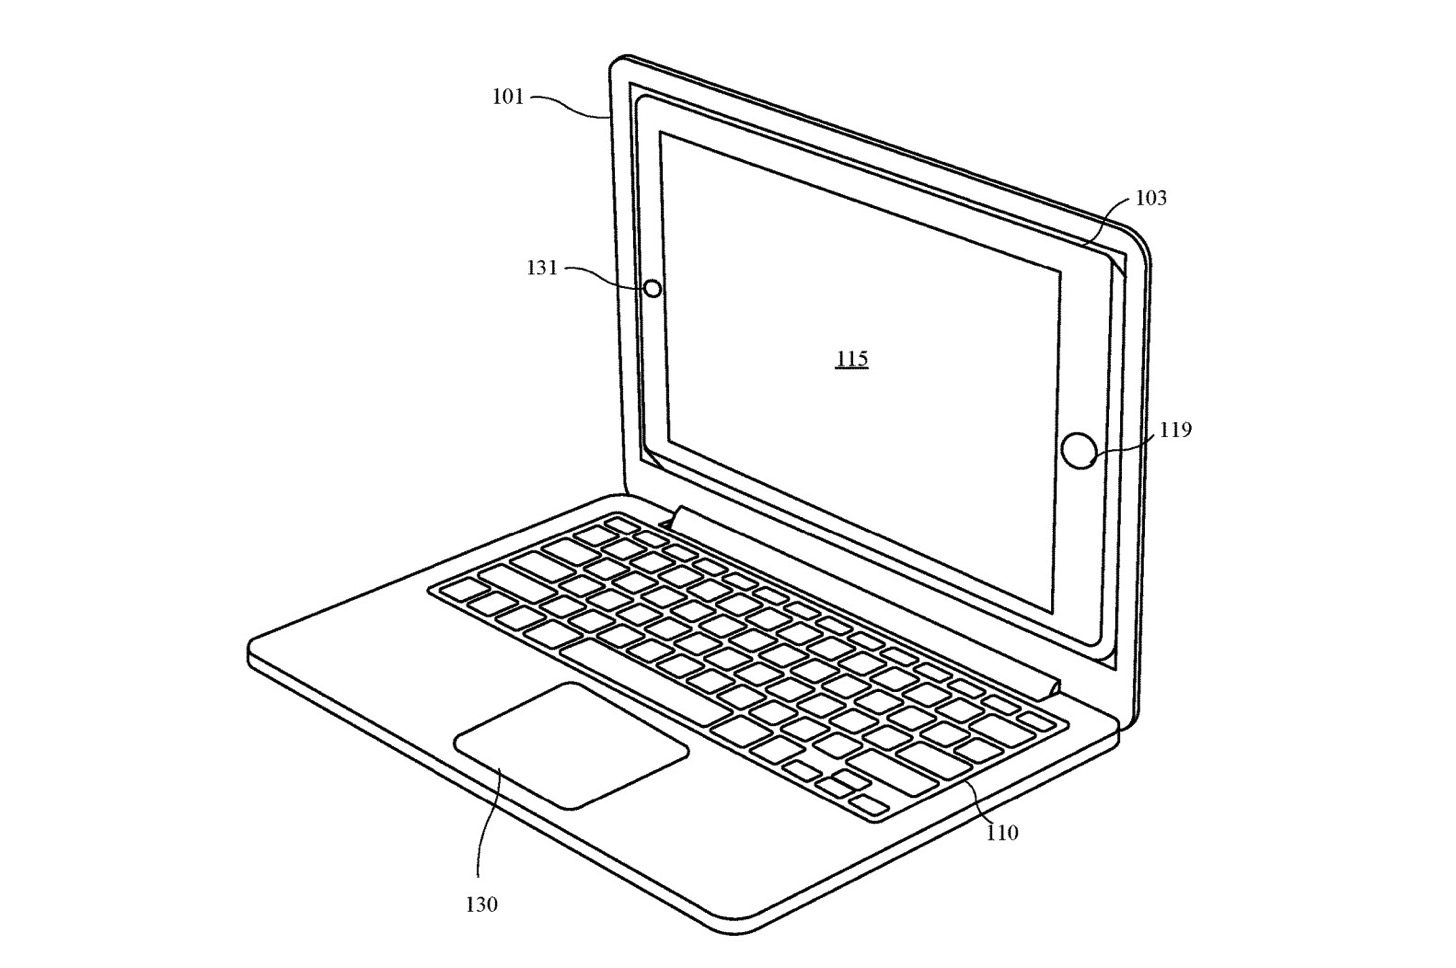 Apple is applying for a patent that turns iphone and ipad into laptops2